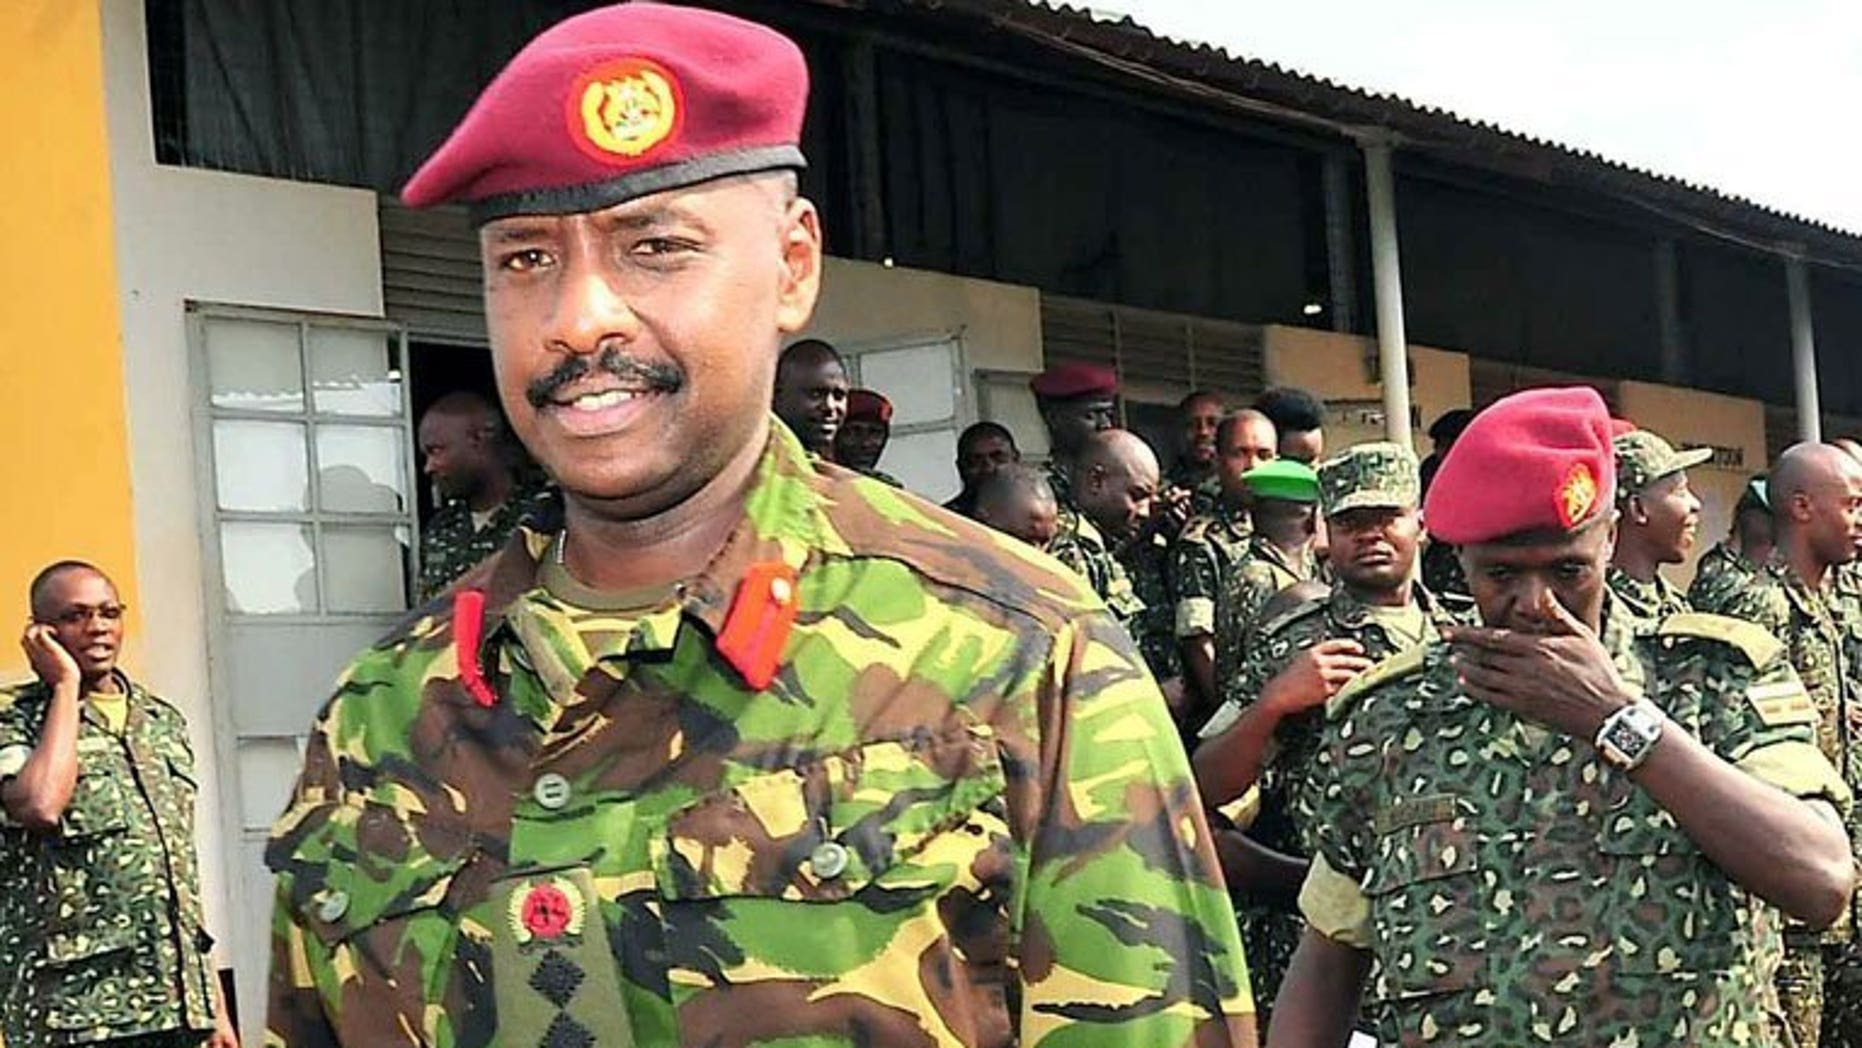 Brigadier Muhoozi Kainerugaba (L), son of Ugandan President Yoweri Museveni and commander of the Ugandan Special Forces Command, at the Sera Kasenyi training centre for Special Forces in Kampala on August 16, 2012. Kainerugaba has said he has no current plan to succeed his father, refuting weeks of opposition accusations he was preparing to take over power.